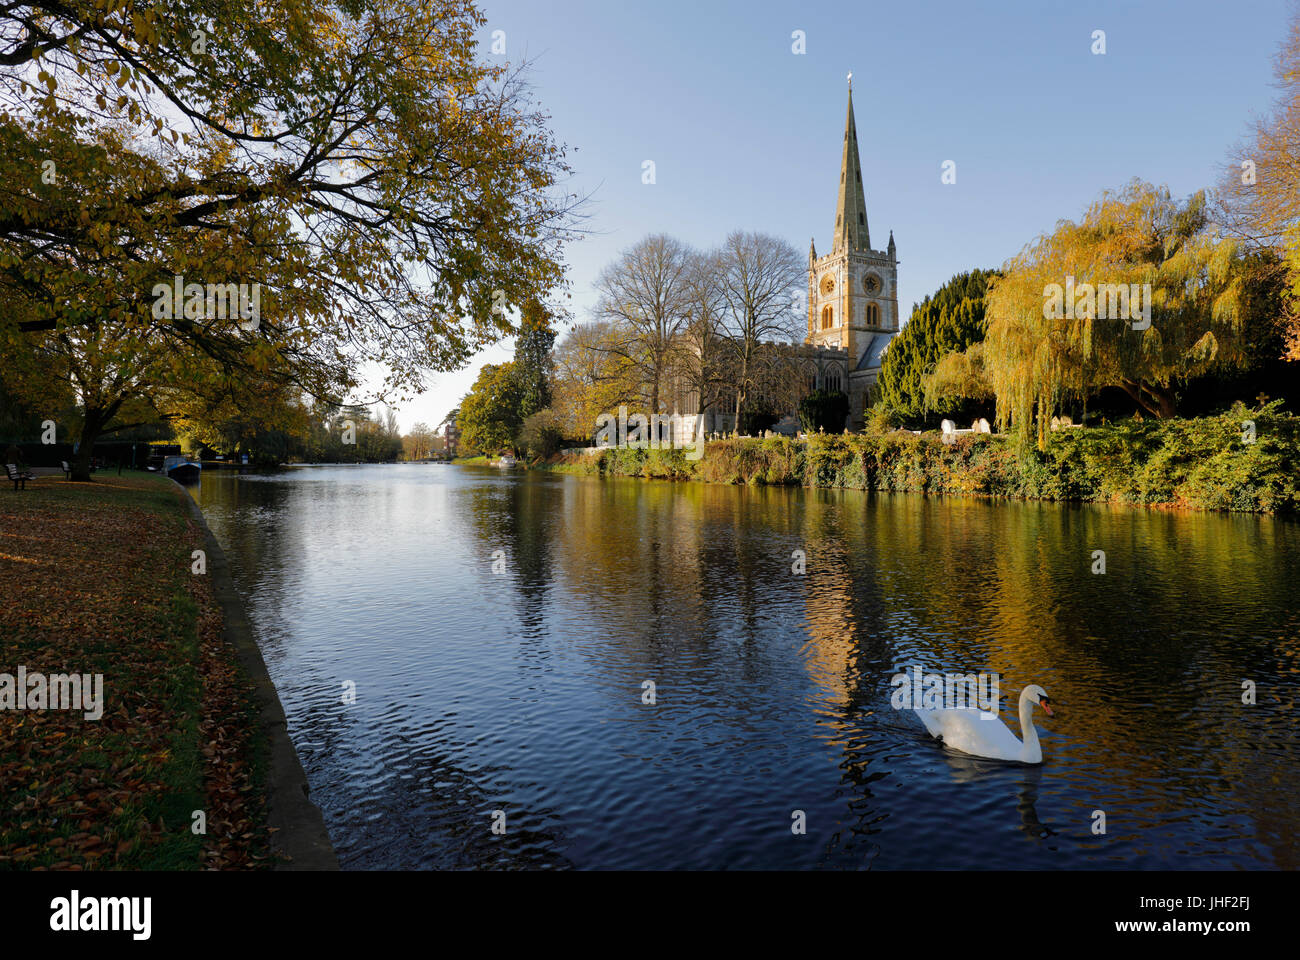 Holy Trinity Church where William Shakespeare is buried on the River Avon, Stratford-upon-Avon, Warwickshire, England, - Stock Image